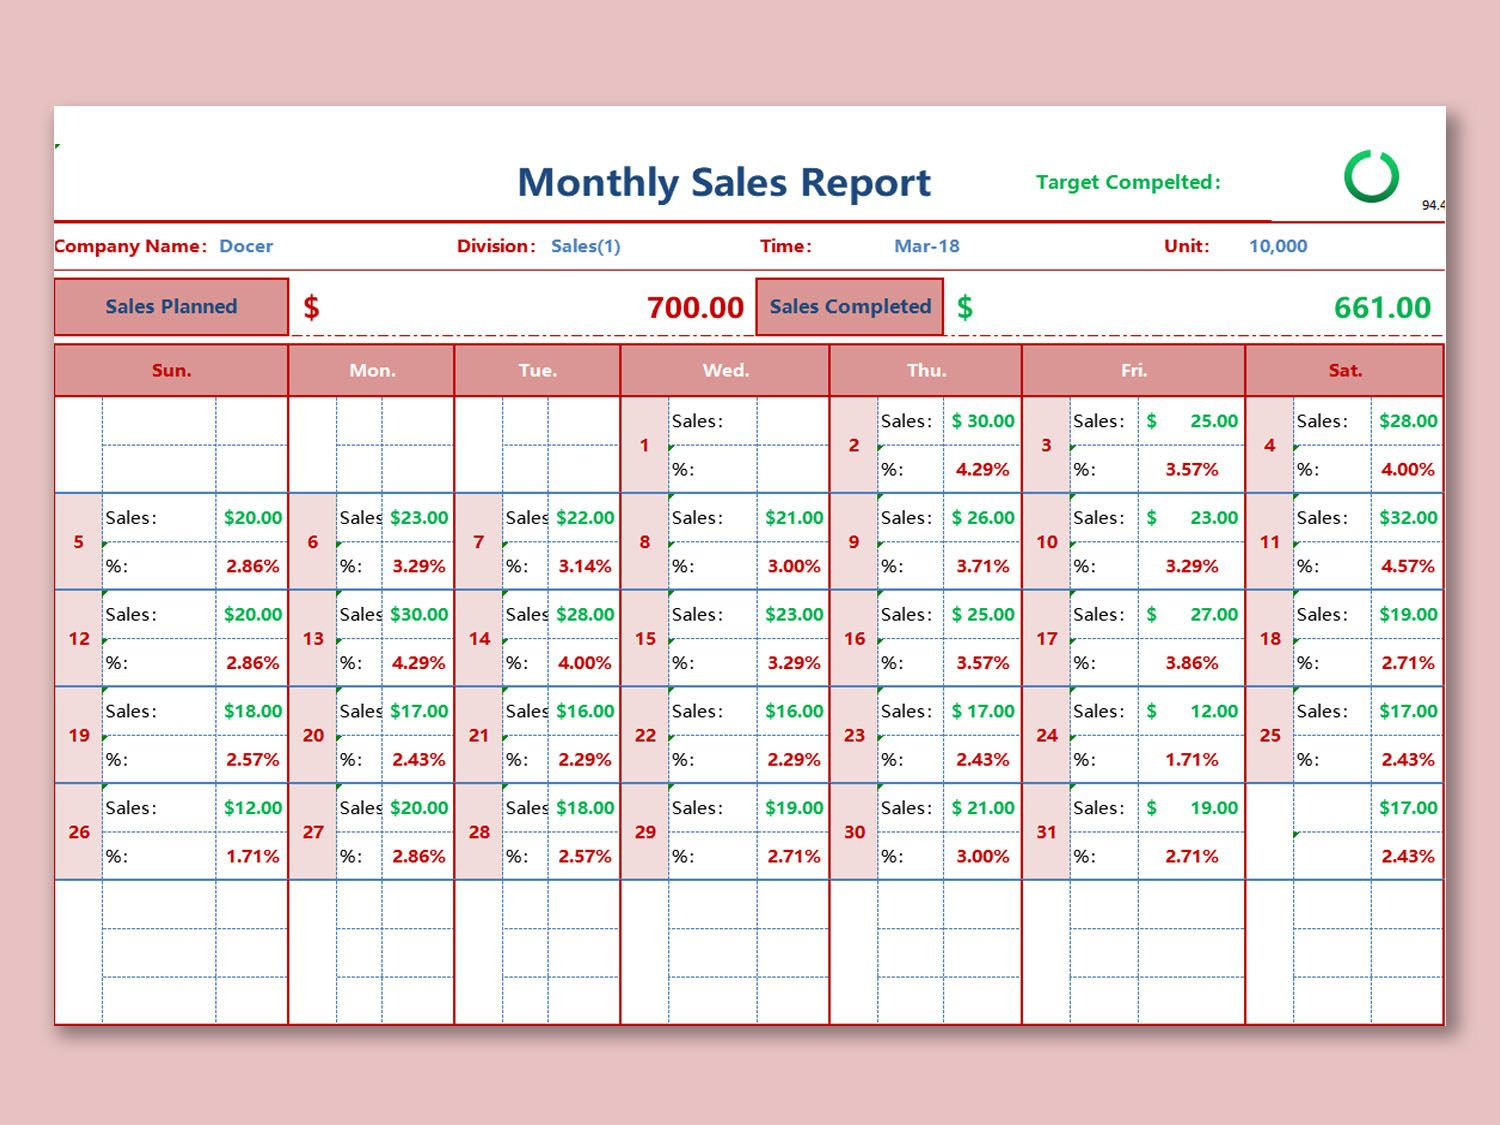 004 Marvelou Monthly Sale Report Template Highest Clarity  Spreadsheet Excel Free Sample Word Format InFull